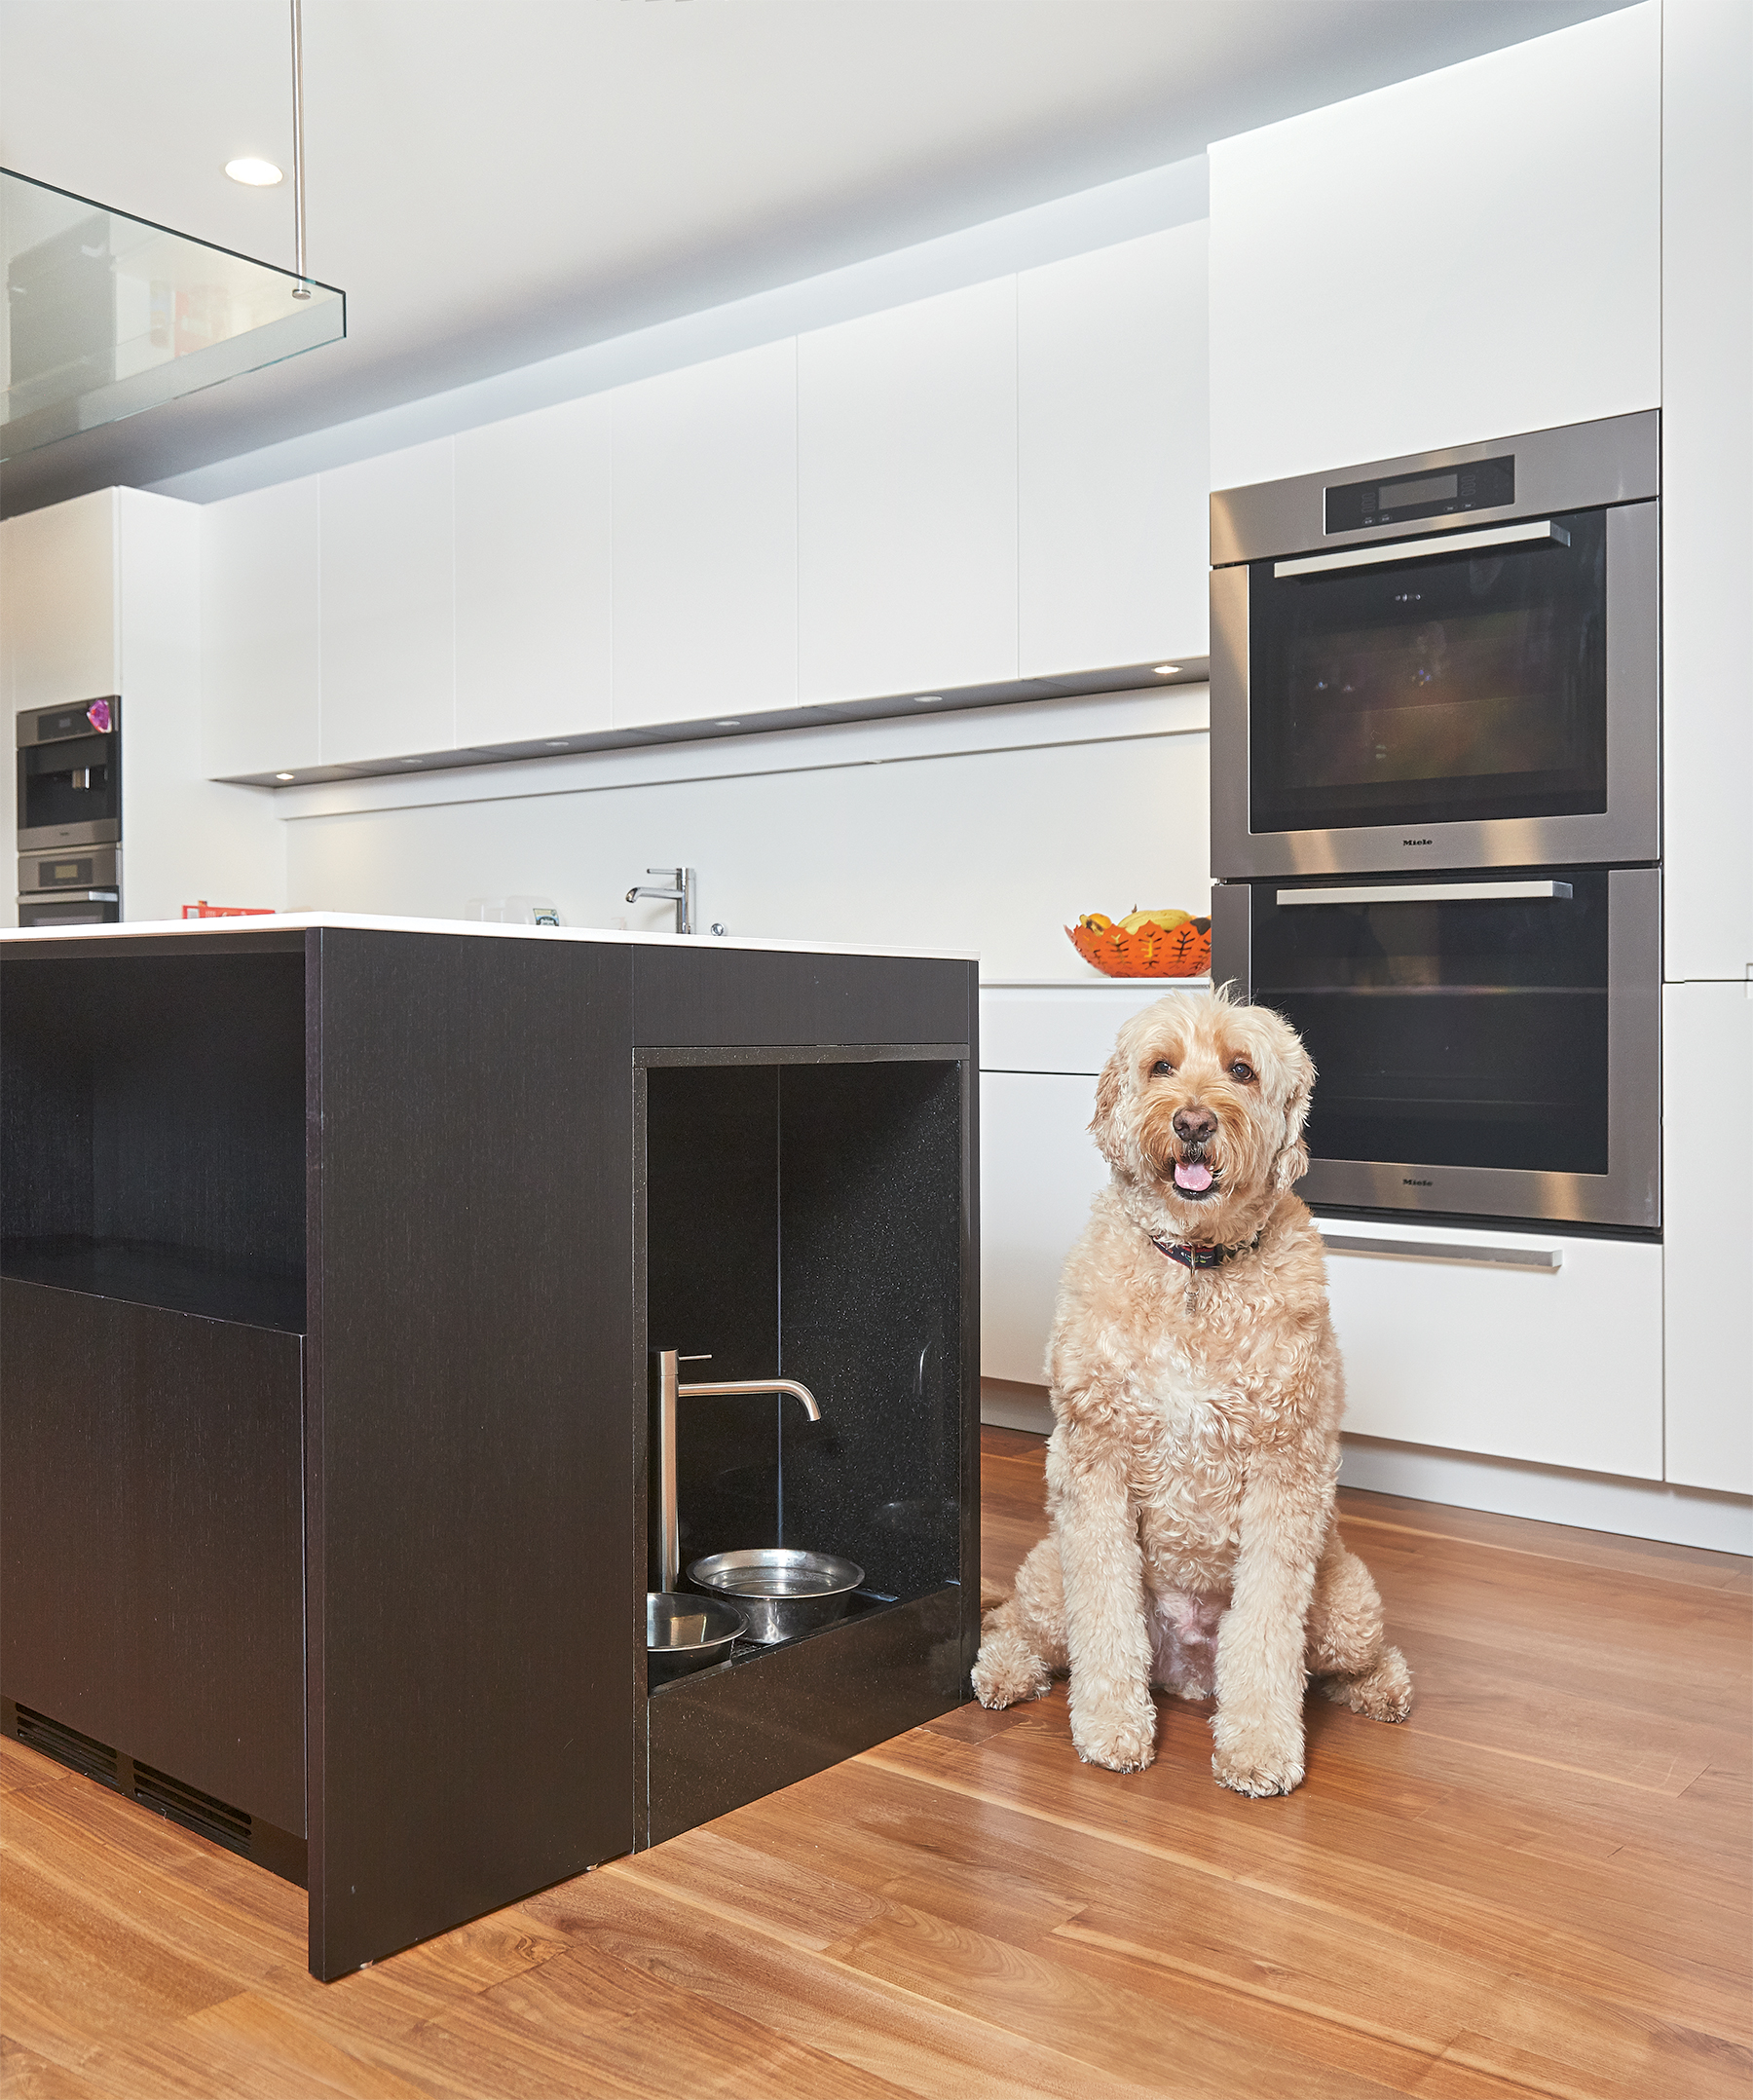 Architect Robert Gurney and the Italian design firm Boffi designed this custom eating and drinking station for Sawyer, a goldendoodle. Its interior is lined with black granite. Photograph by Jeff Elkins.